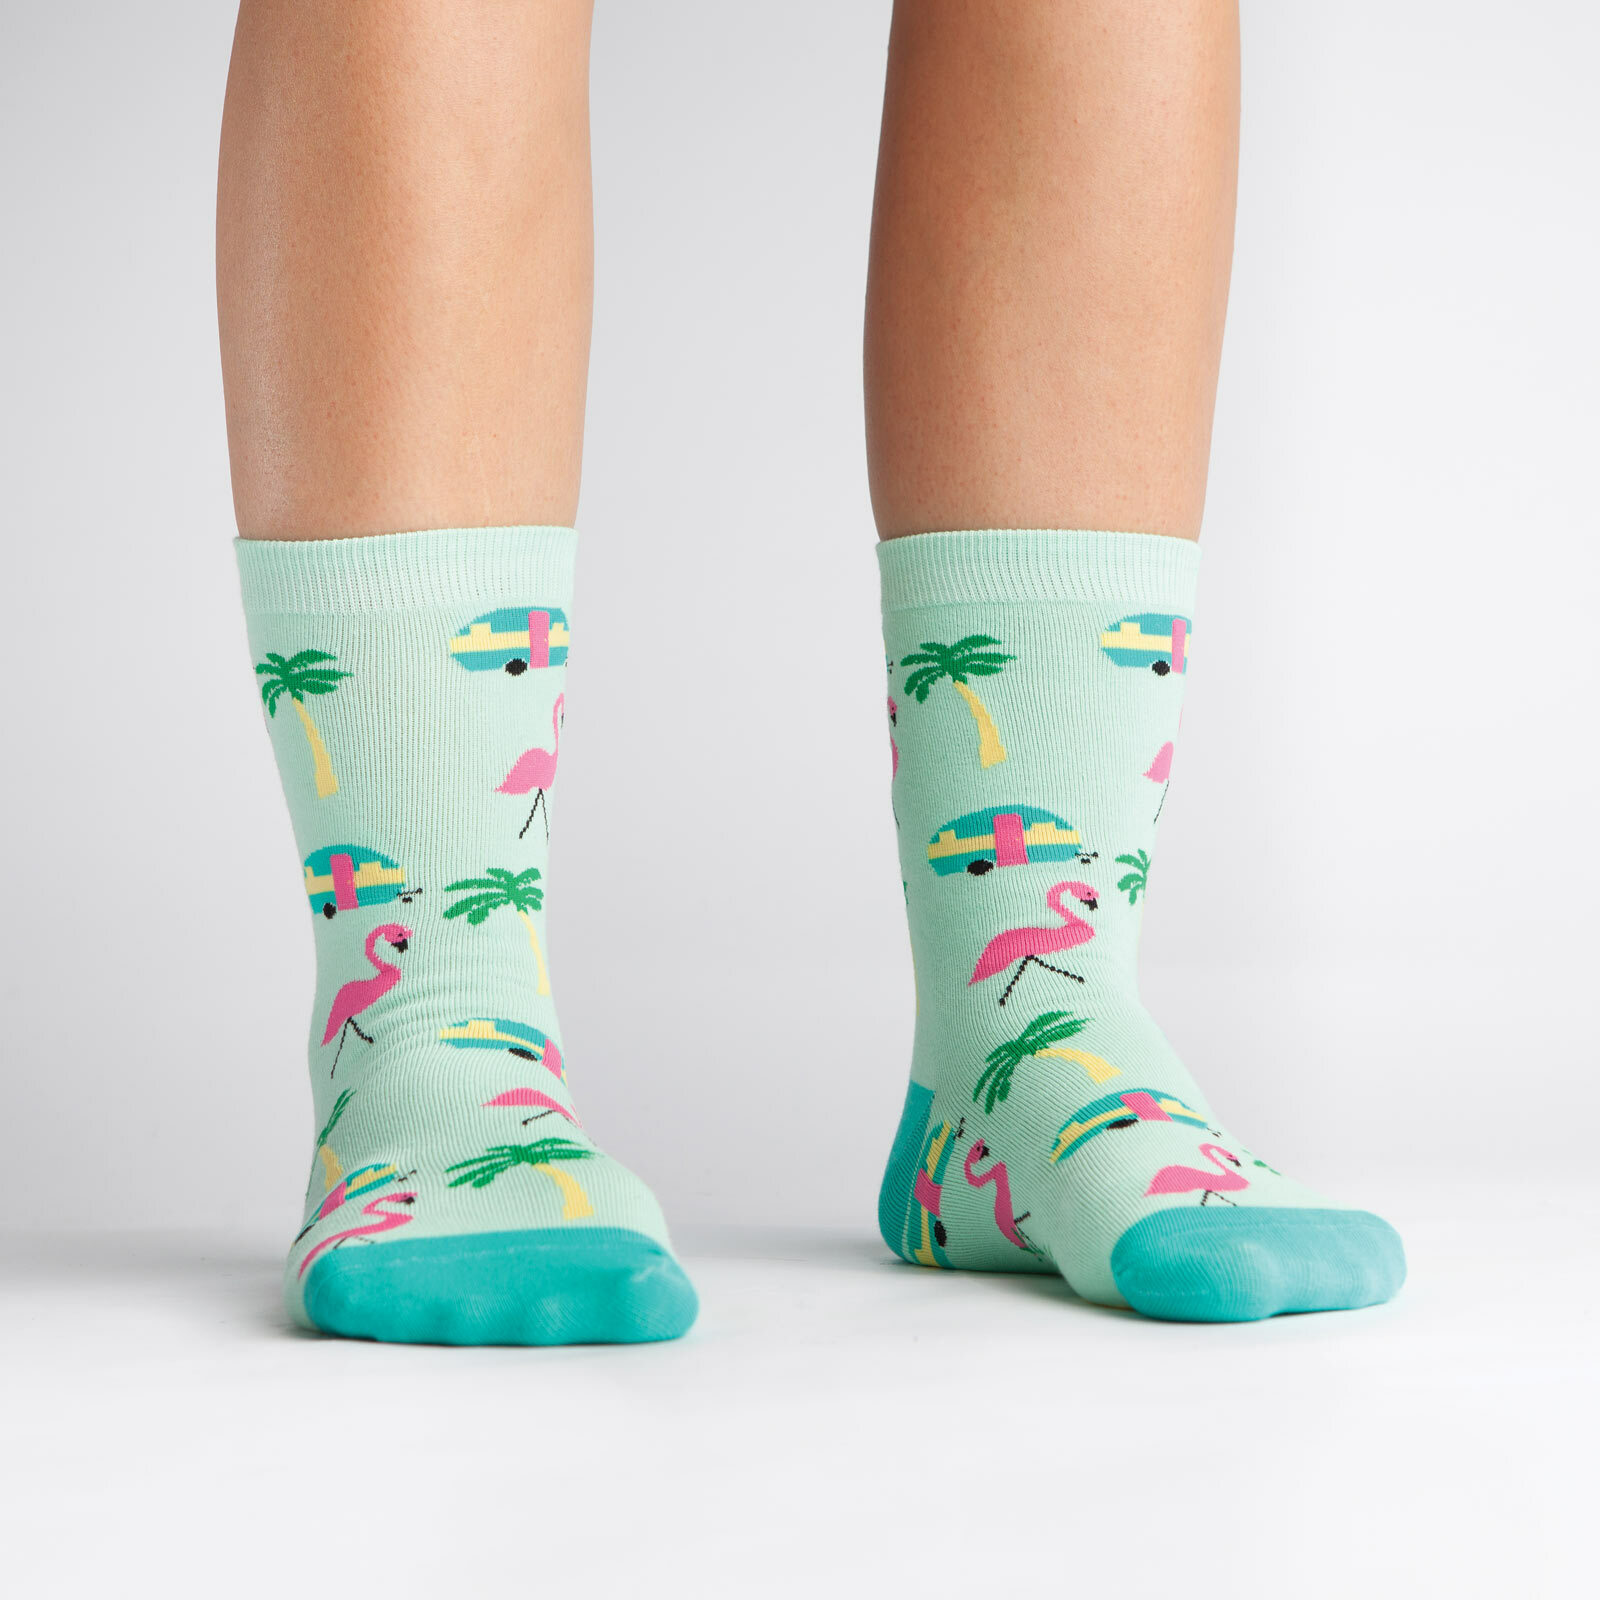 model wearing Florida - Flamingo Crew Socks Blue and Pink - Women's